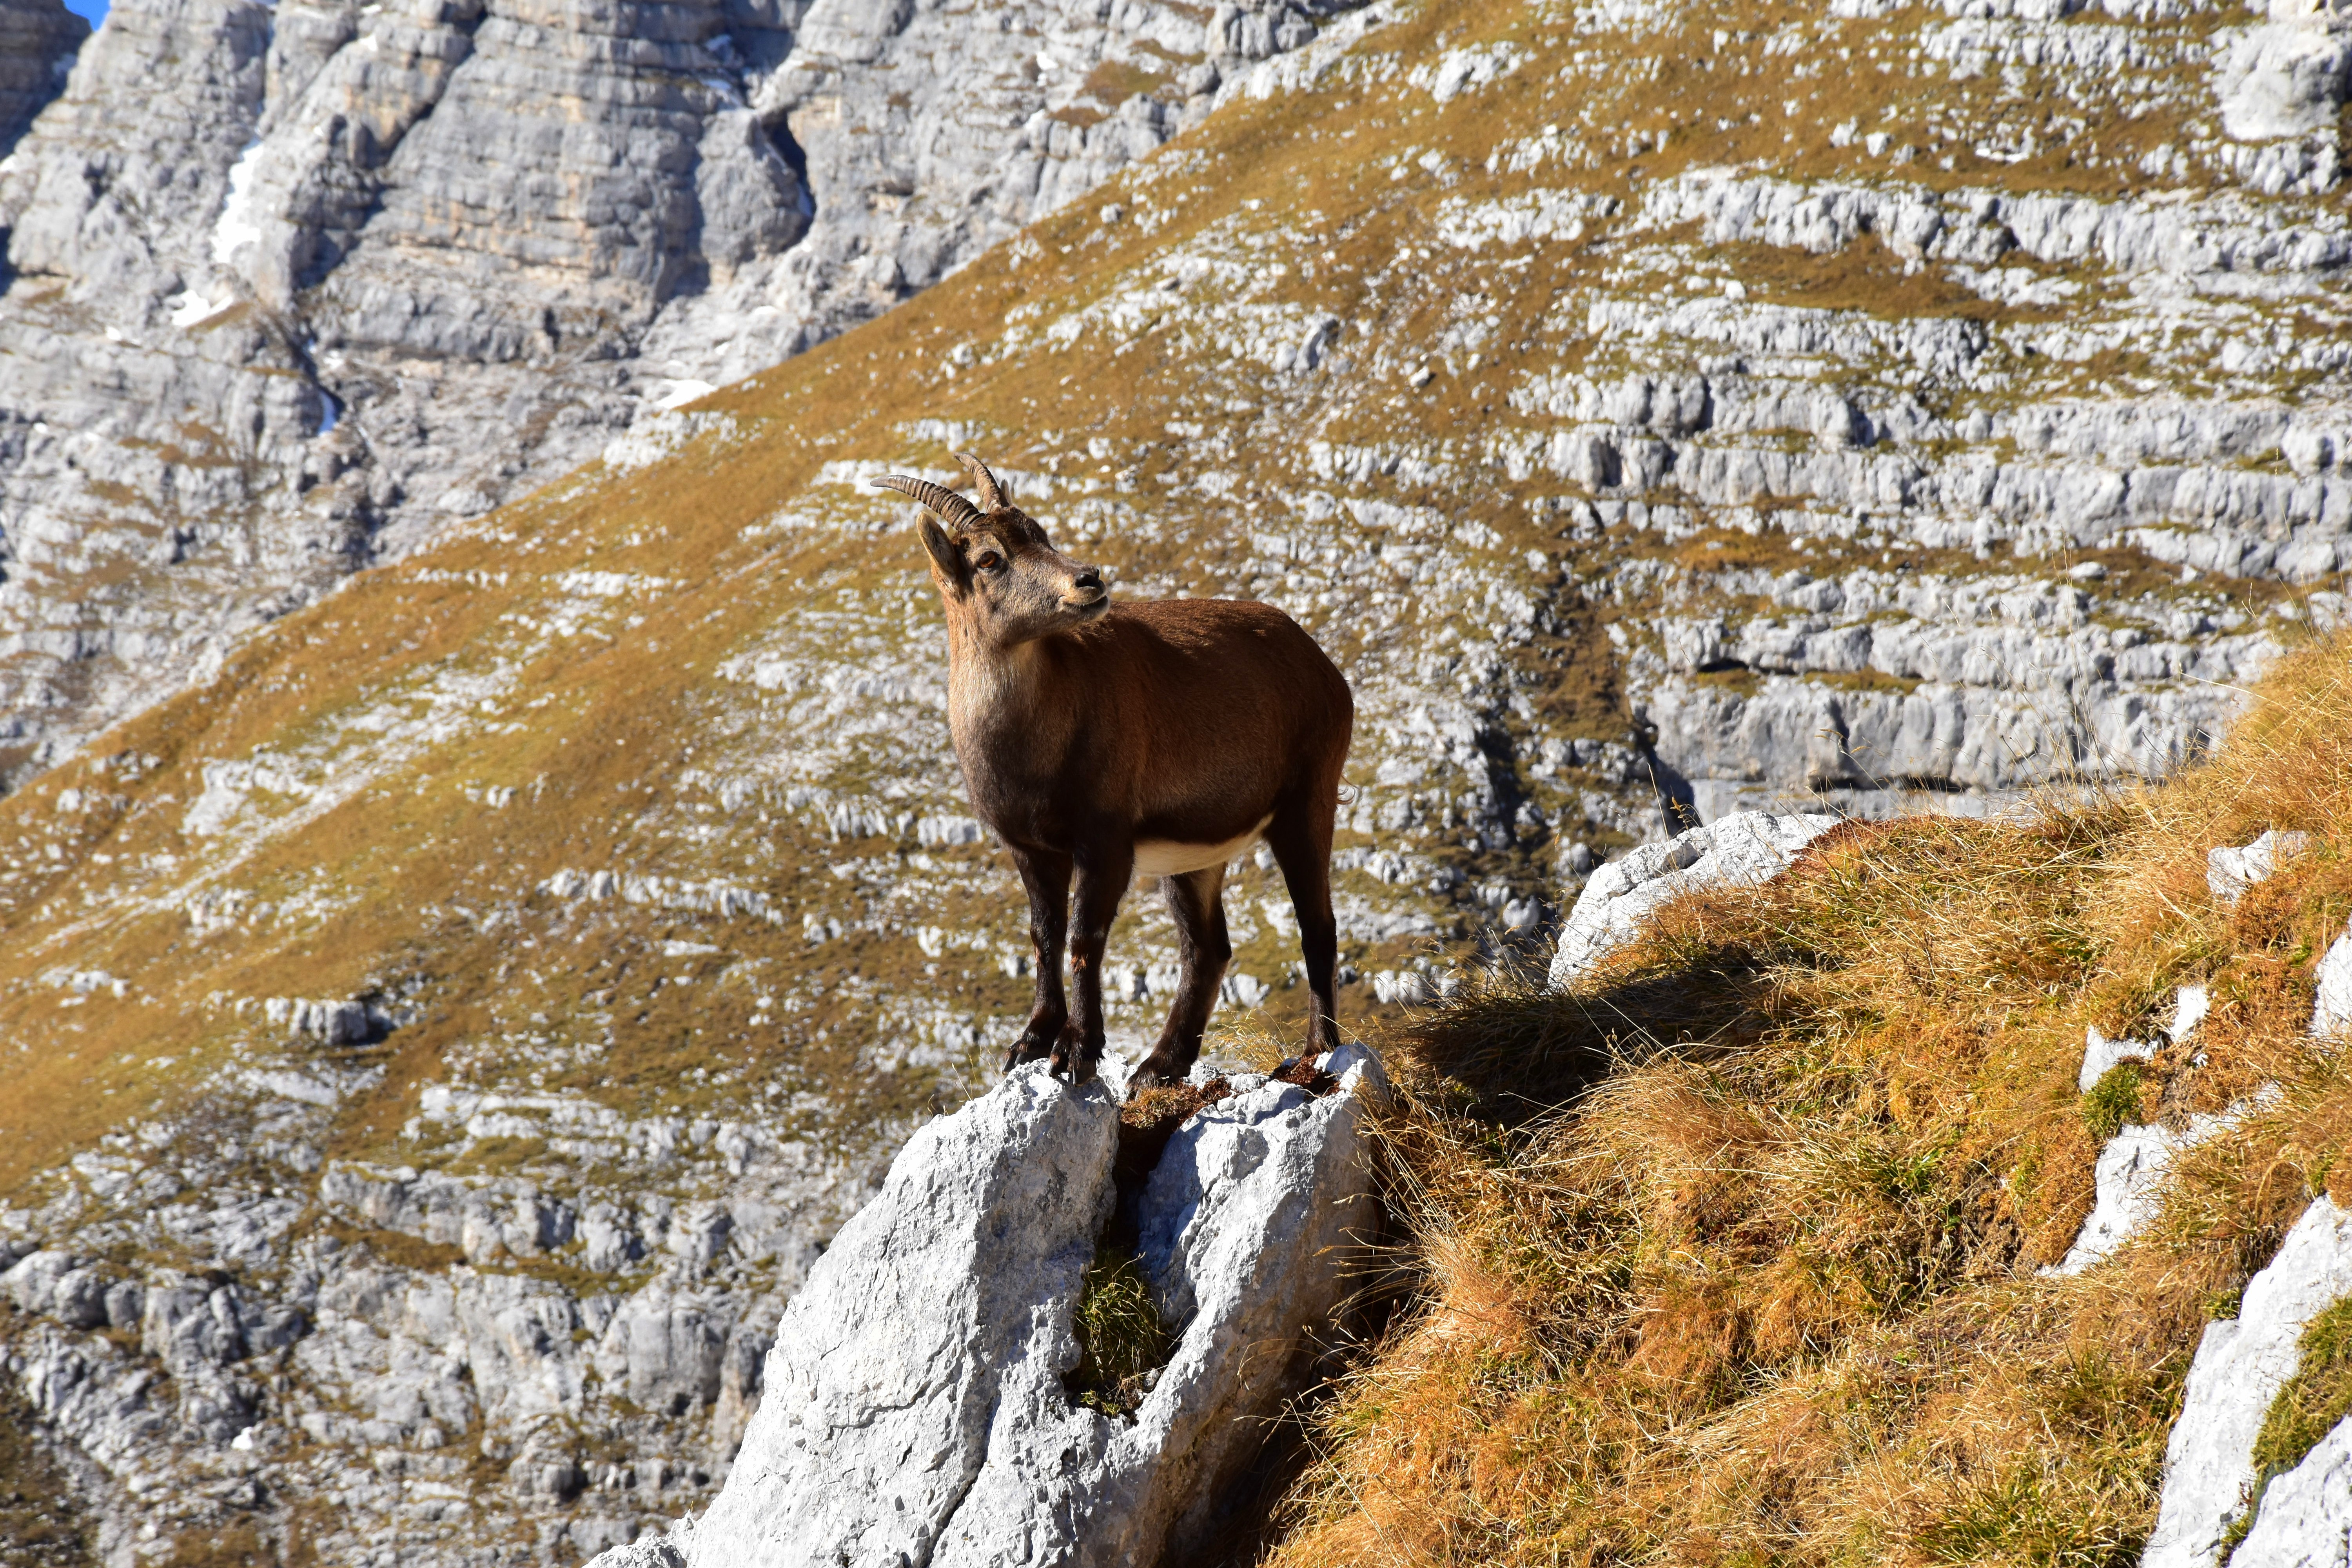 A mountain goat balanced at the edge of a rocky cliff surrounded by vistas of stone mountains